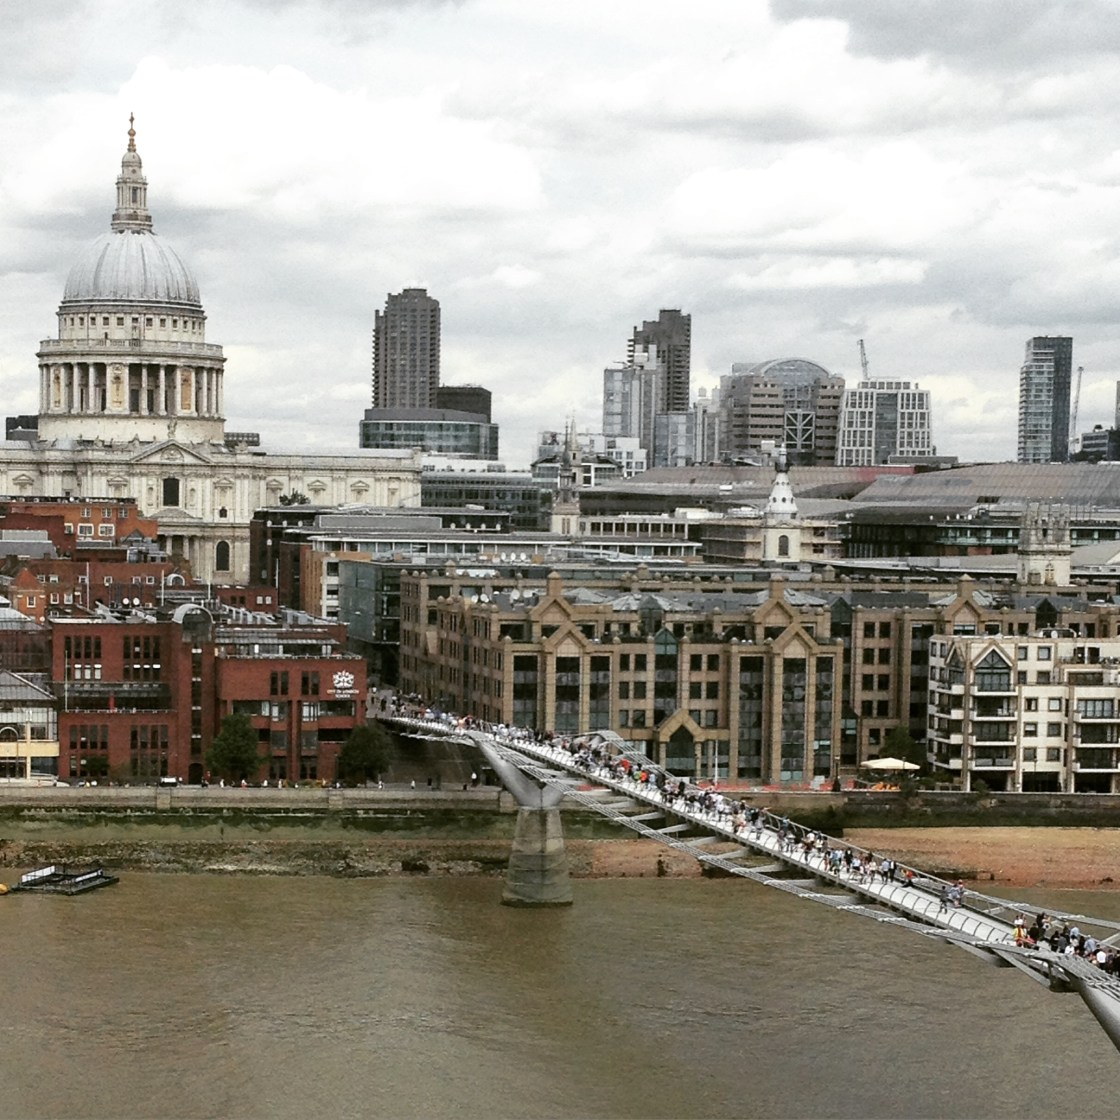 Saint Paul's Cathedral Travellivelearn